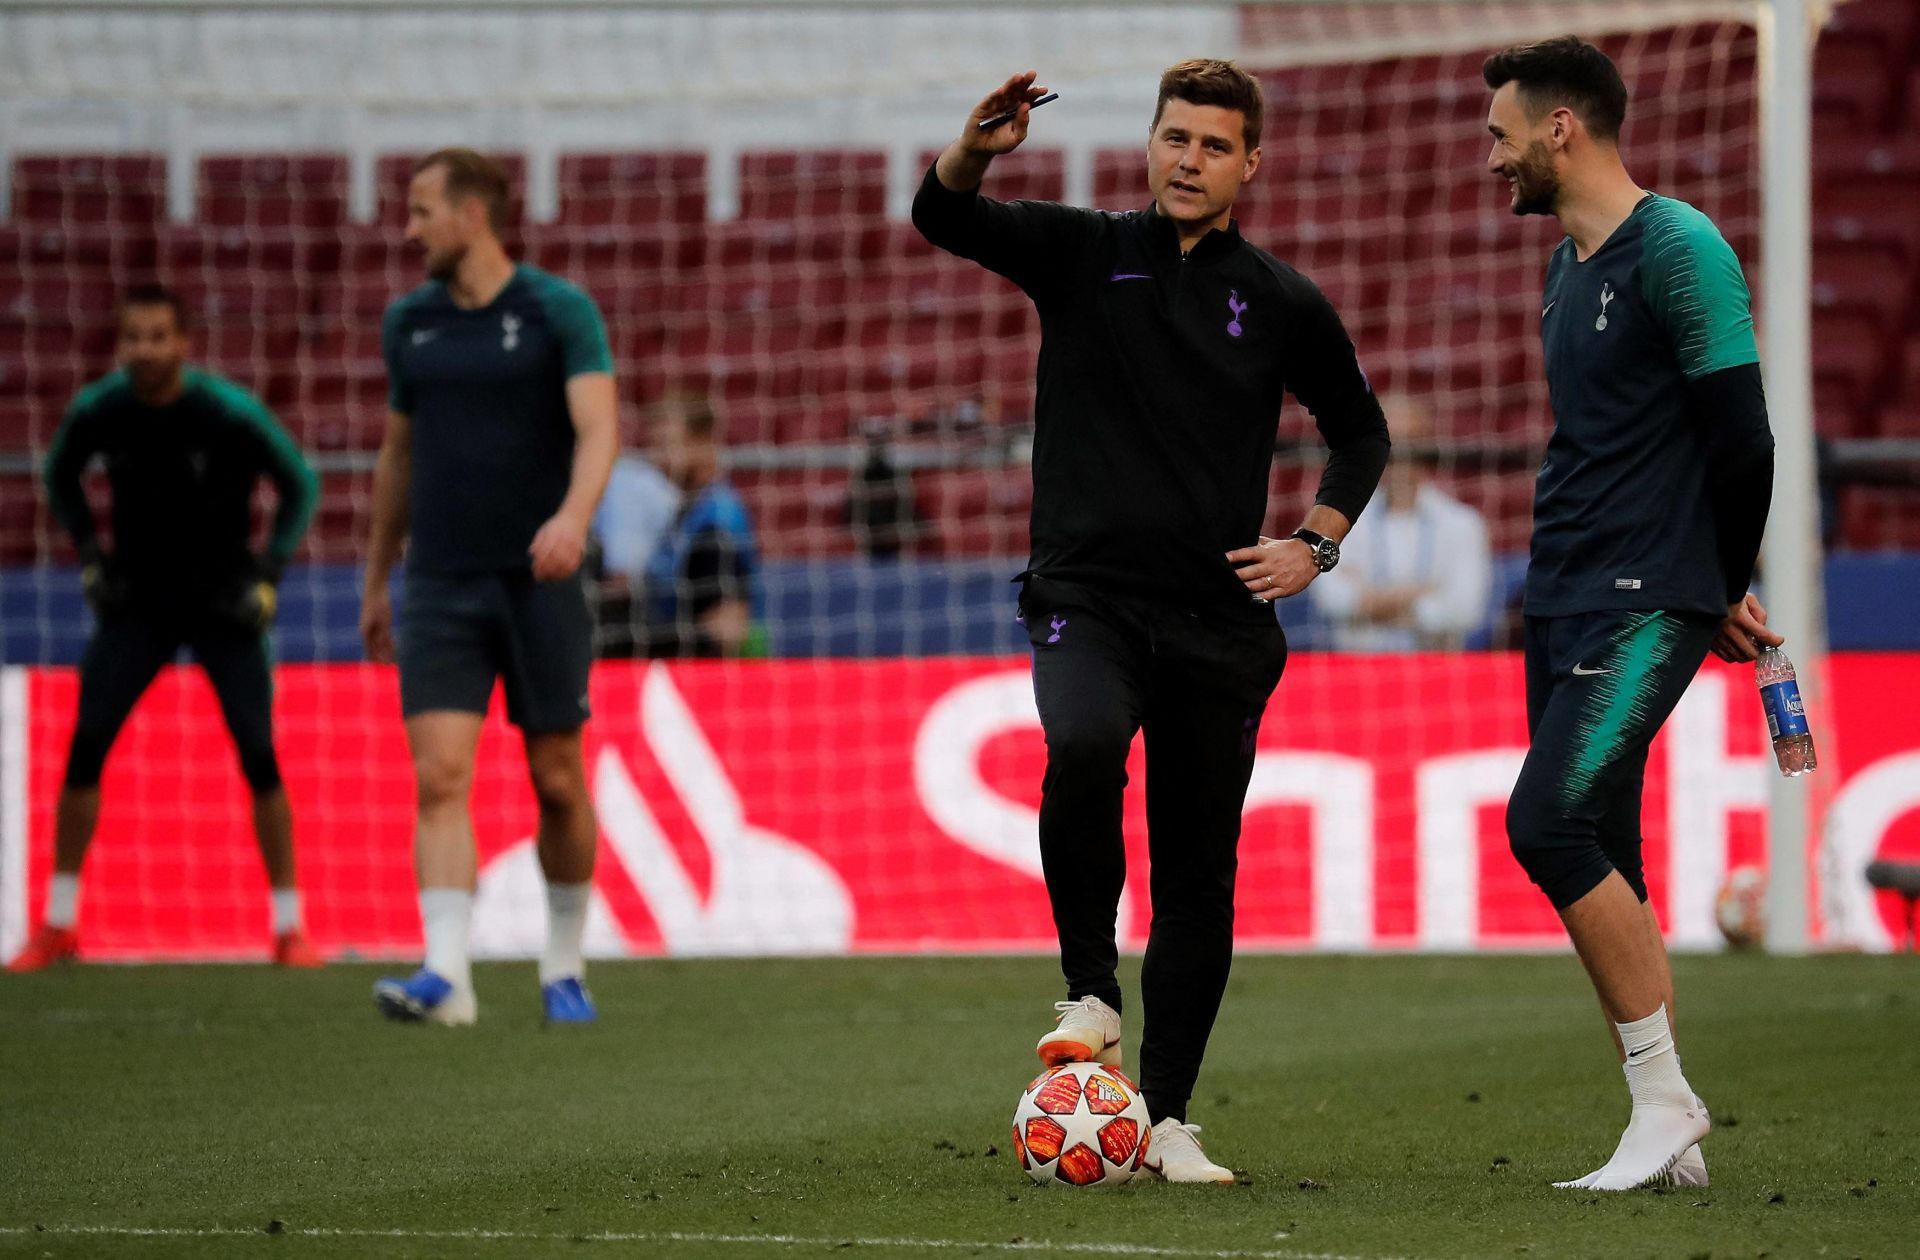 MADRID, SPAIN - MAY 31 : Head coach of Tottenham Mauricio Pochettino and goalkeeper Hugo Lloris (R) are seen during a training session of his team ahead of UEFA Champions League Final match between Tottenham Hotspur and Liverpool at Wanda Metropolitano Stadium on May 31, 2019 in Madrid, Spain. Burak Akbulut / Anadolu Agency/ABACAPRESS.COM FOT. ABACA / NEWSPIX.PL POLAND ONLY !!! --- Newspix.pl *** Local Caption *** www.newspix.pl mail us: info@newspix.pl call us: 0048 022 23 22 222 --- Polish Picture Agency by Ringier Axel Springer Poland